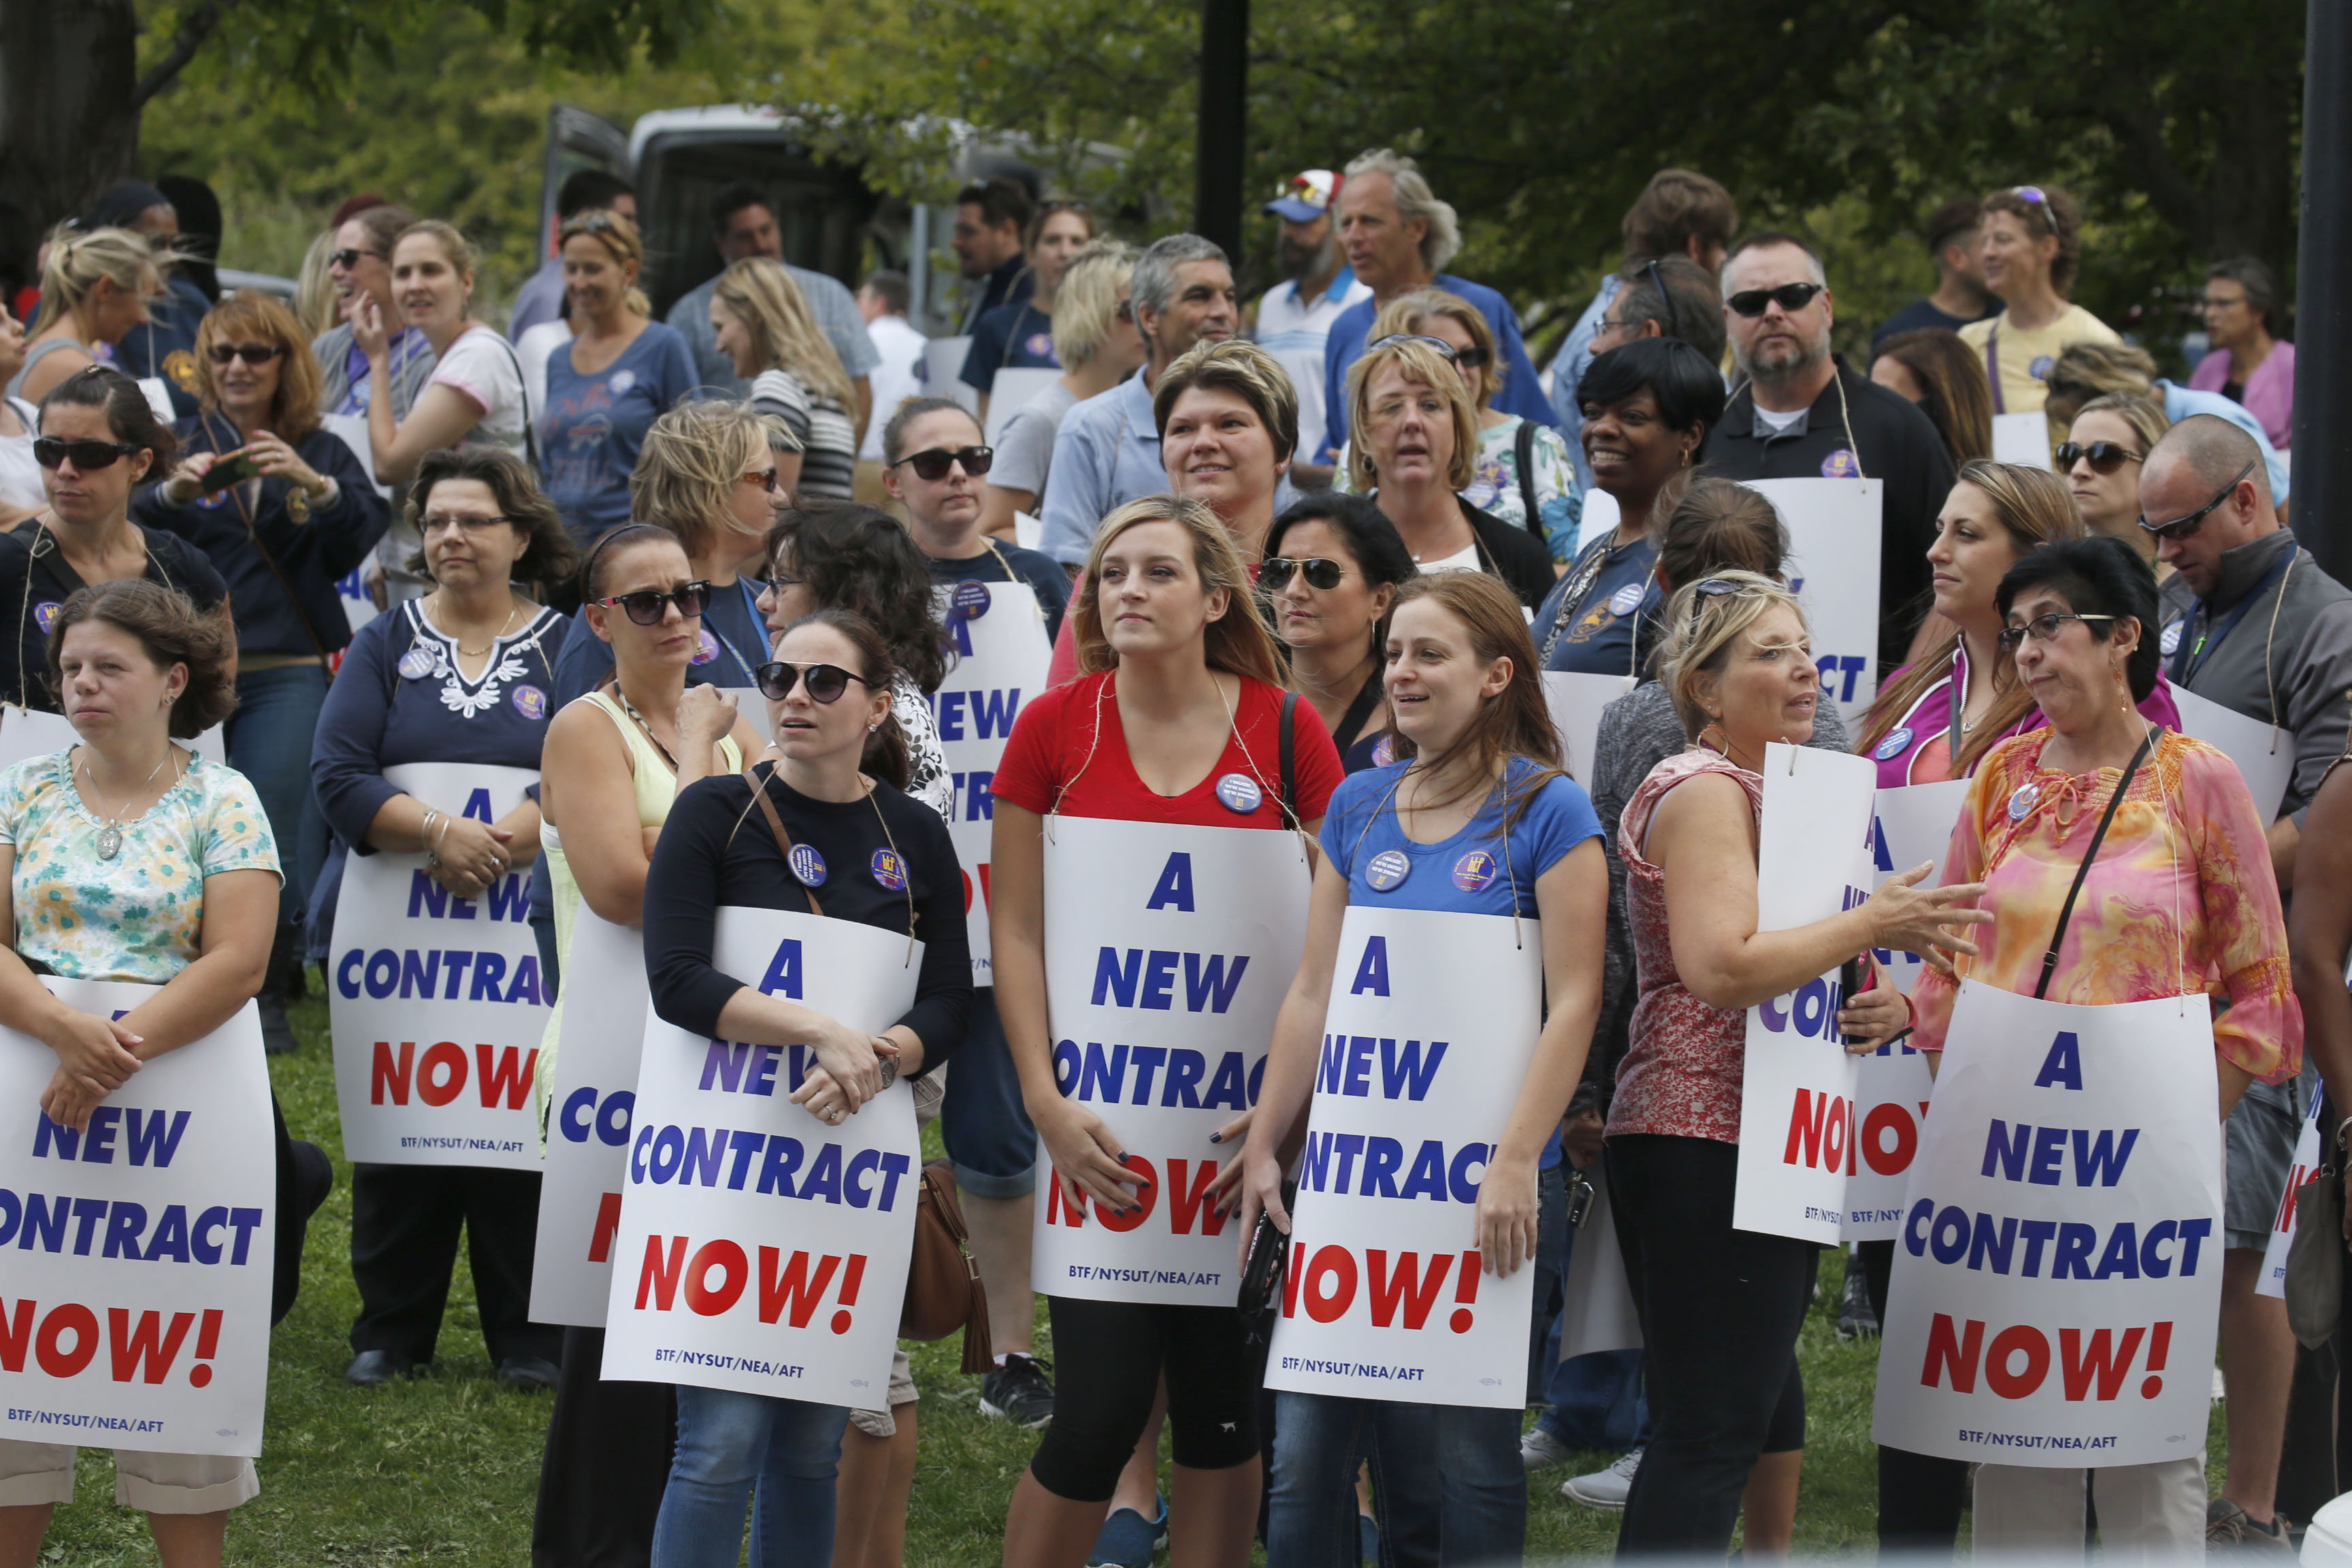 Hundreds of teachers gathered in Niagara Square on Sept. 28 in support of a new contract.  (Robert Kirkham/Buffalo News)